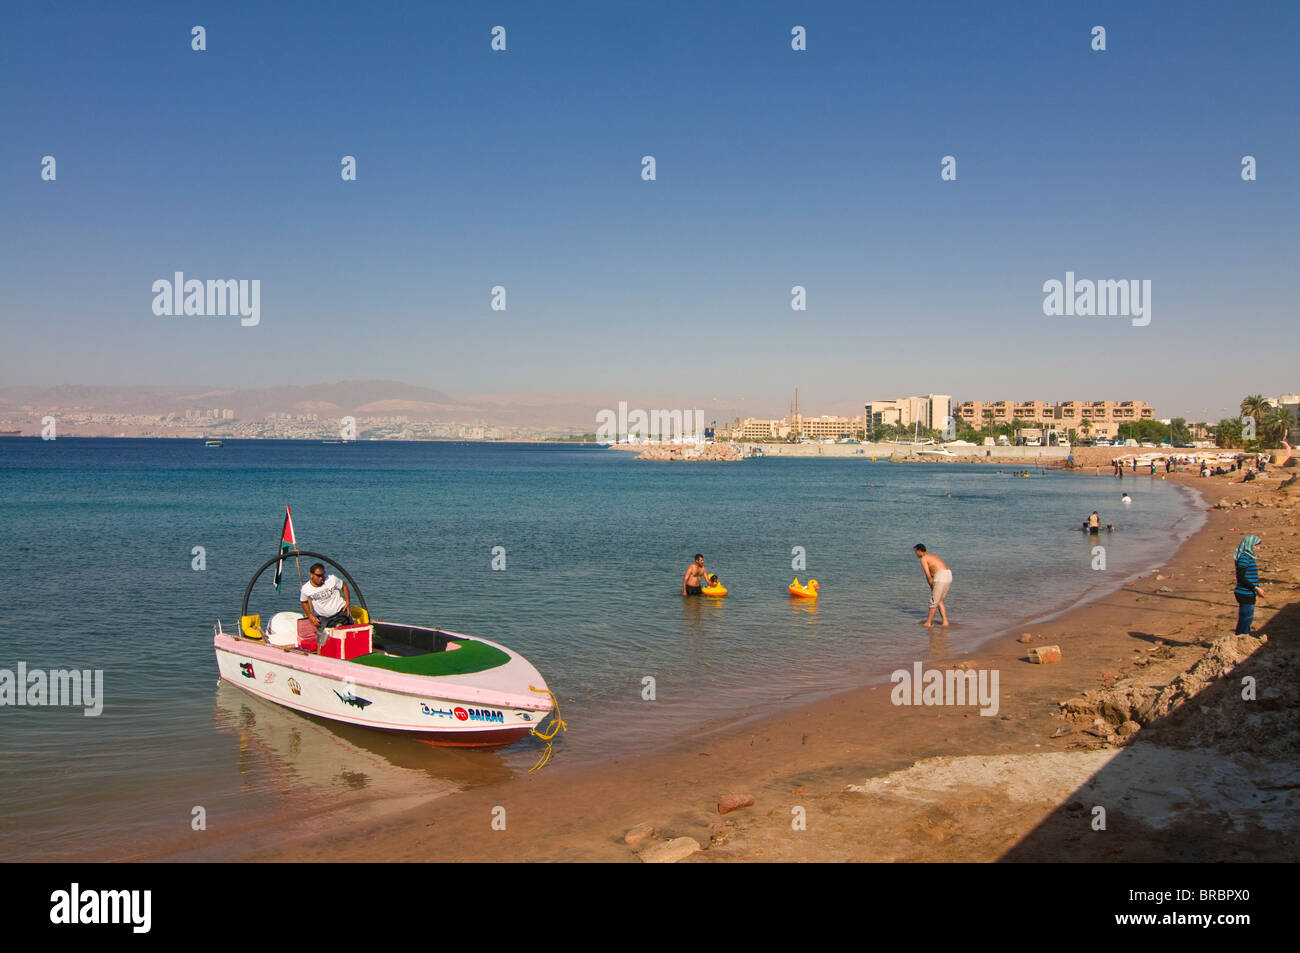 Public beach in Aqaba, Jordan - Stock Image